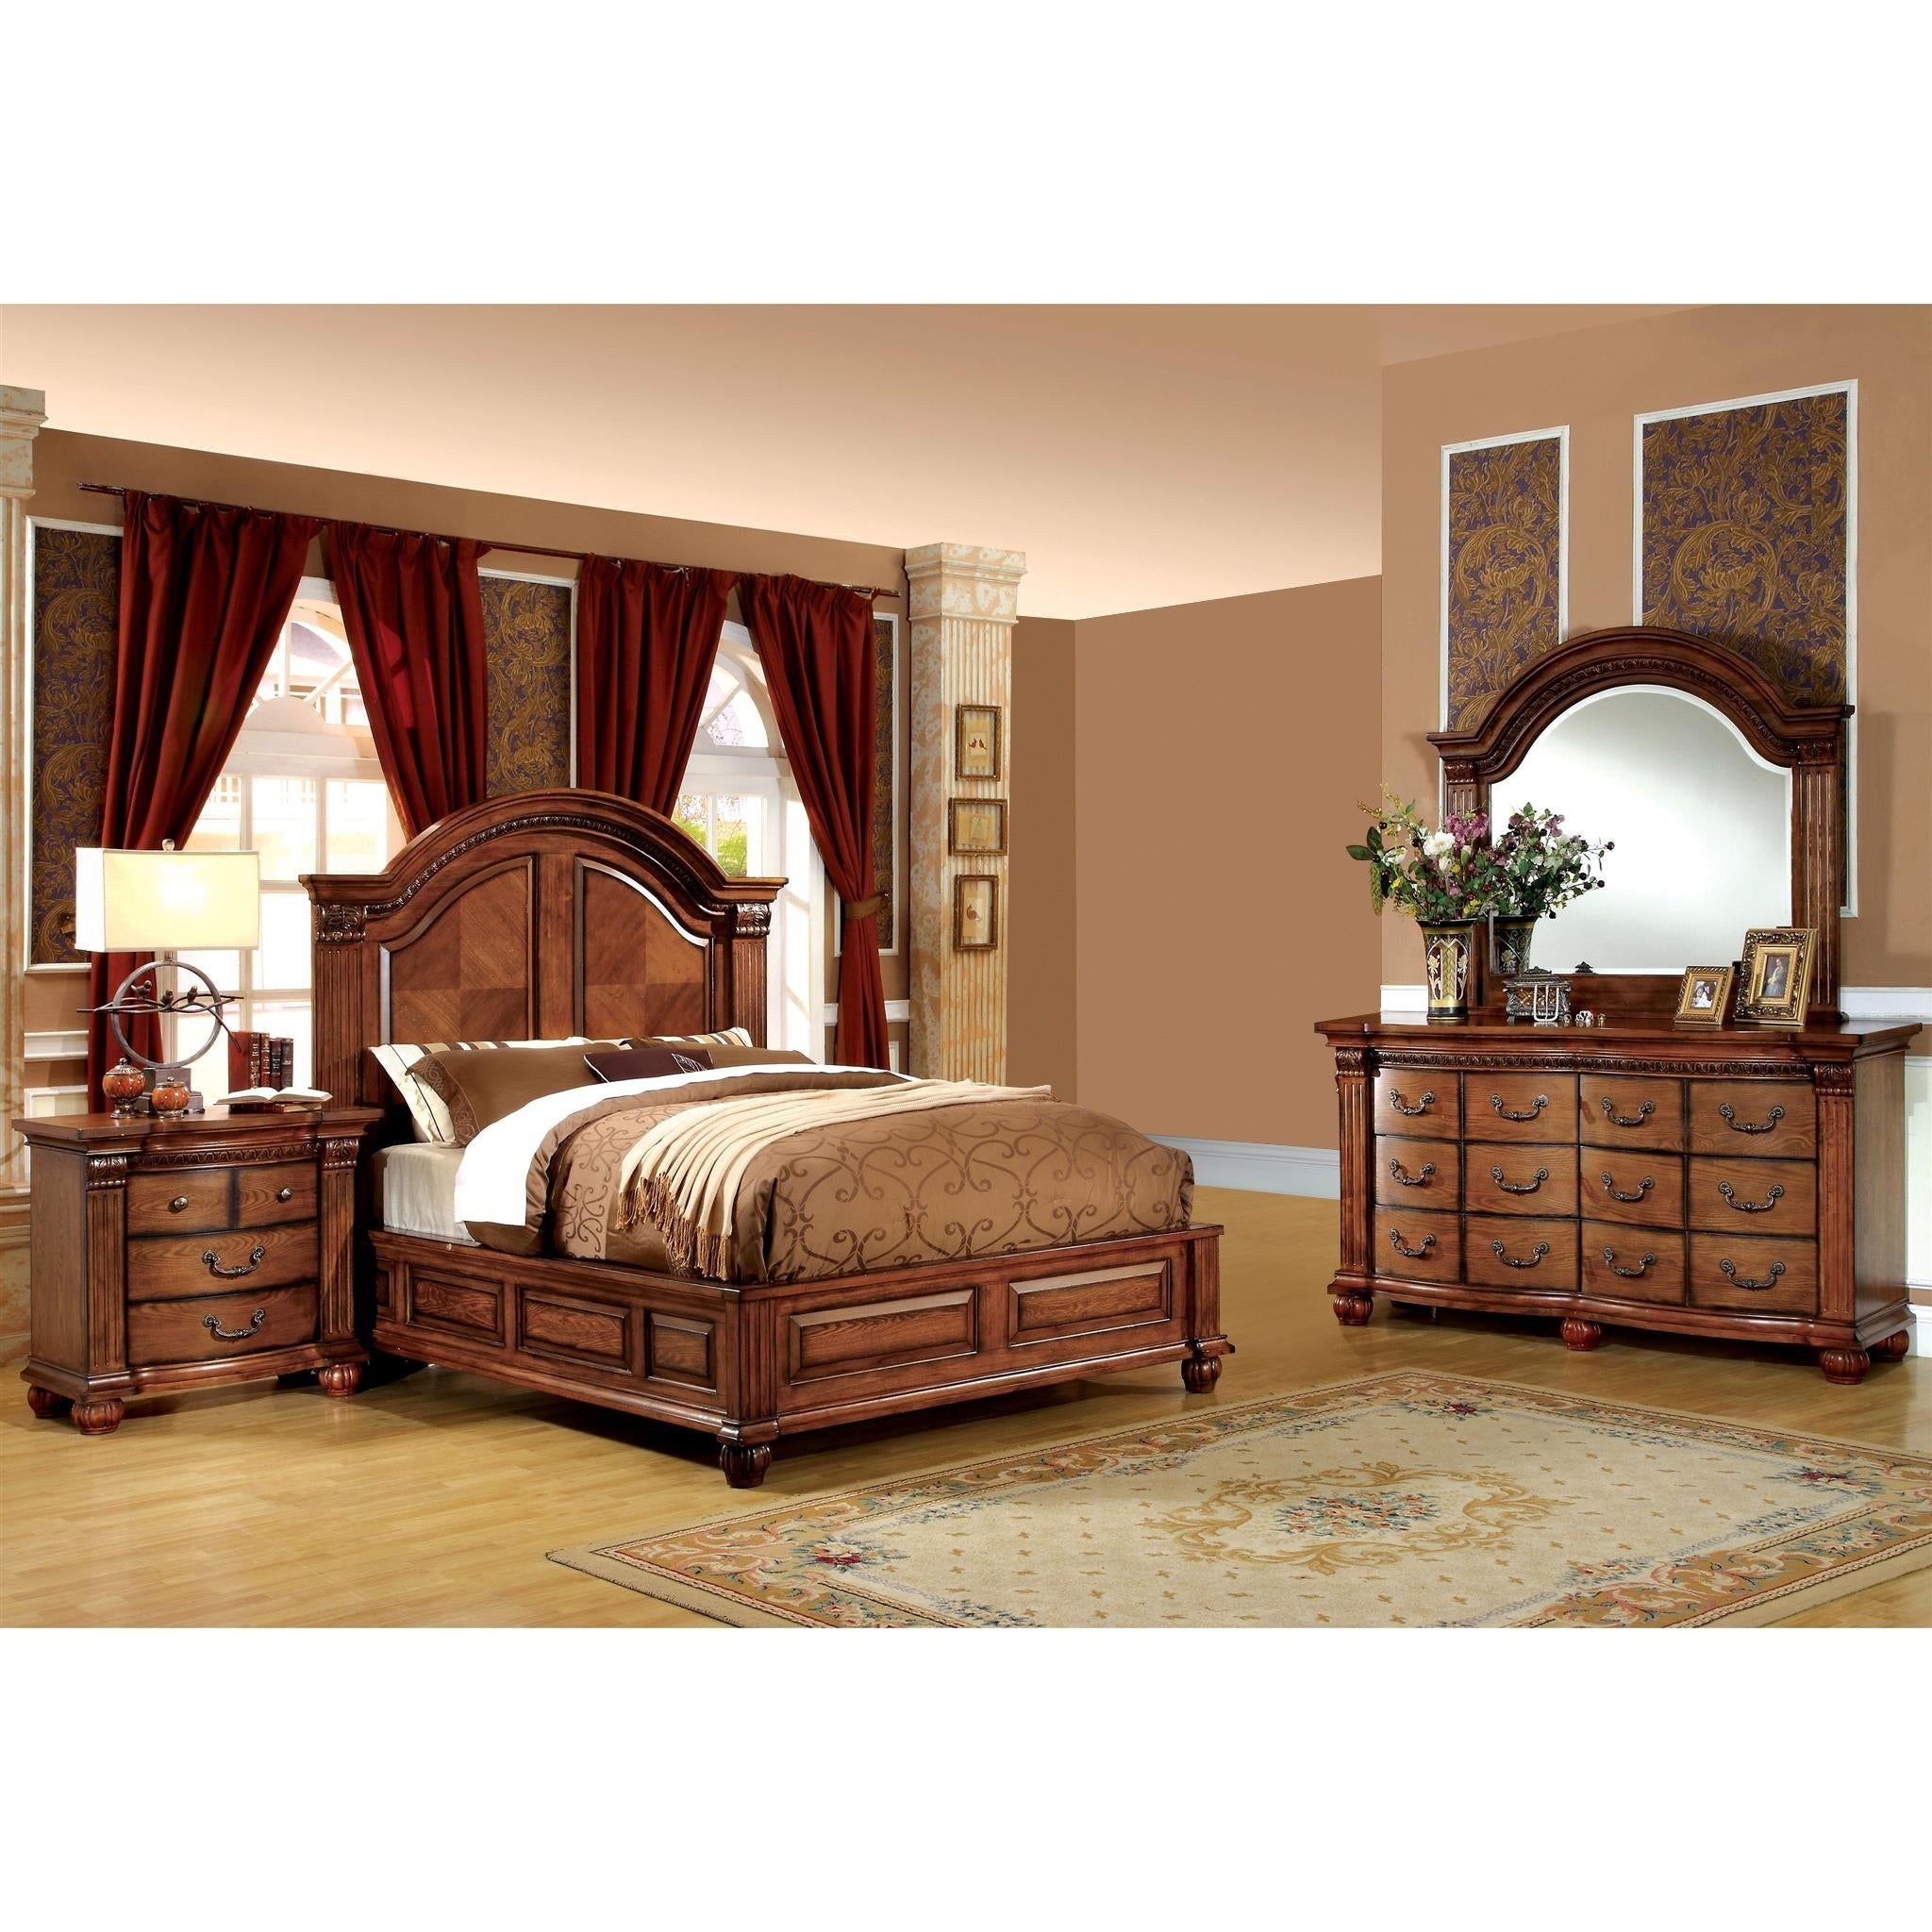 03e00924691c Shop Furniture of America Traditional Antique Tobacco Oak 4-Piece Bedroom  Set - On Sale - Free Shipping Today - Overstock - 9251850